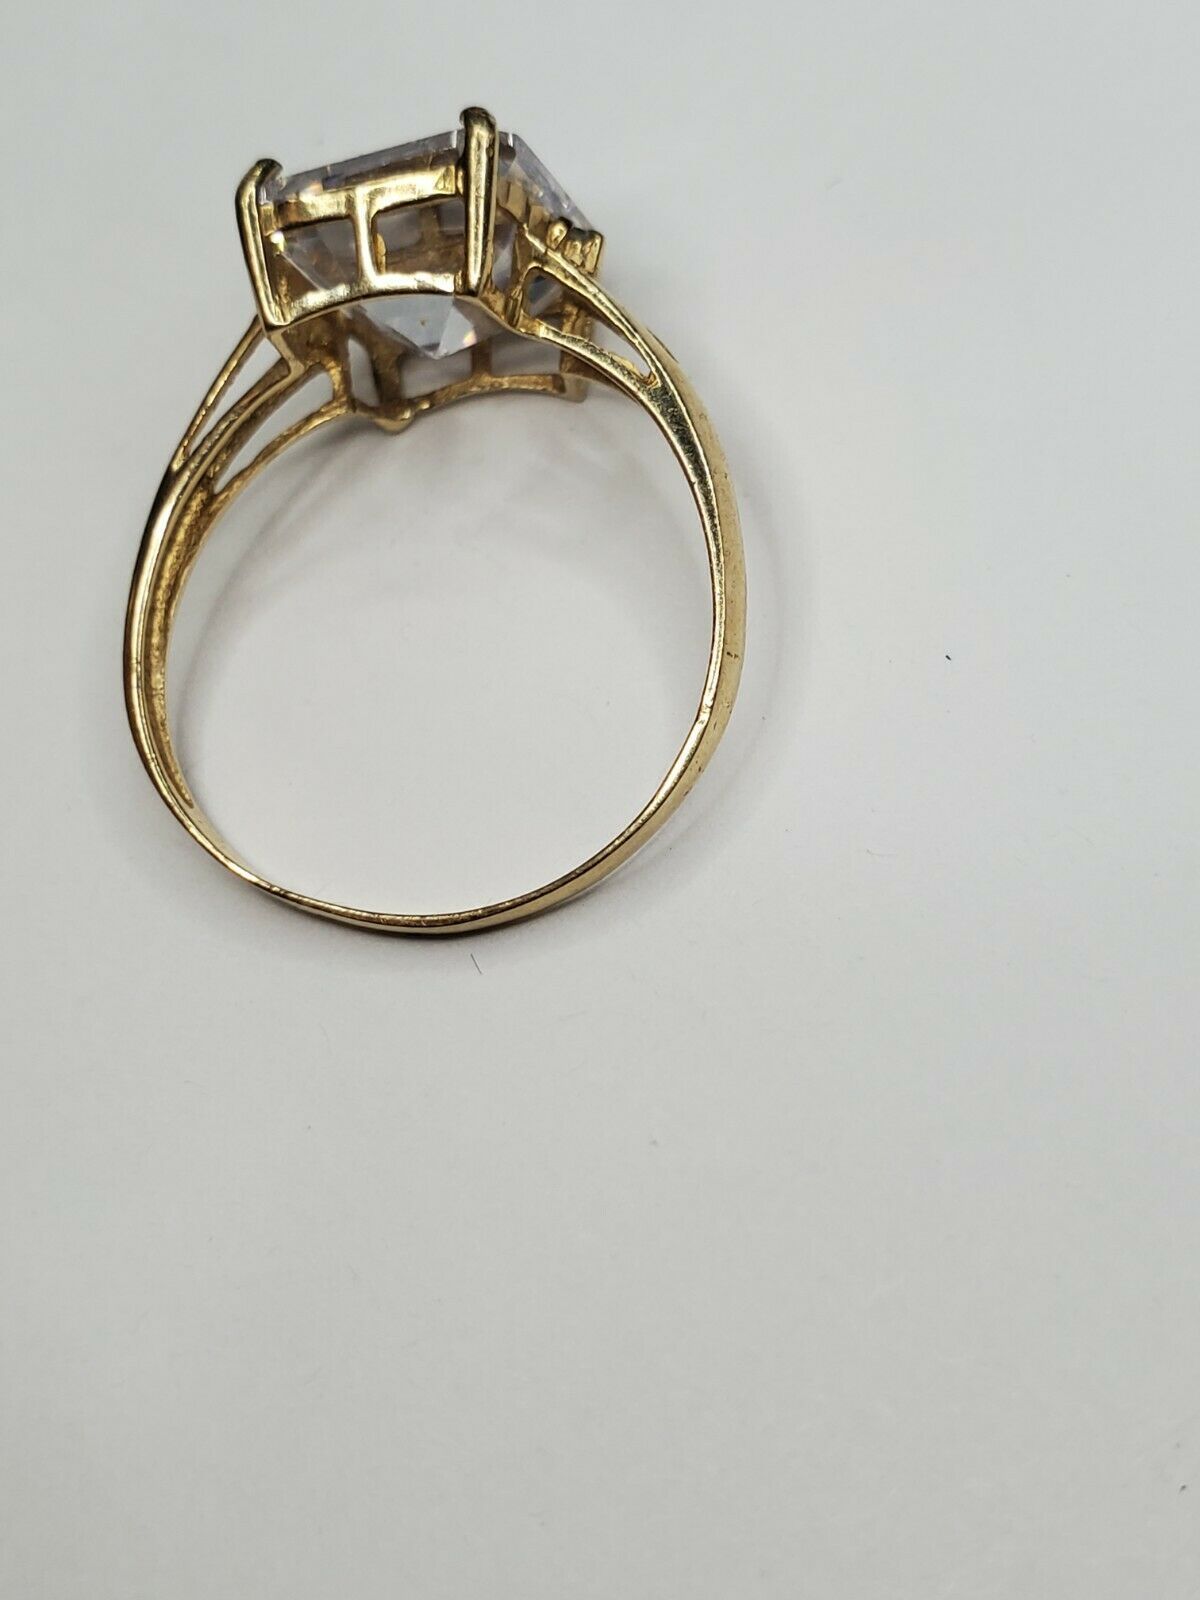 Solid 10k Gold Ring Solitaire Princess Cut  - image 3